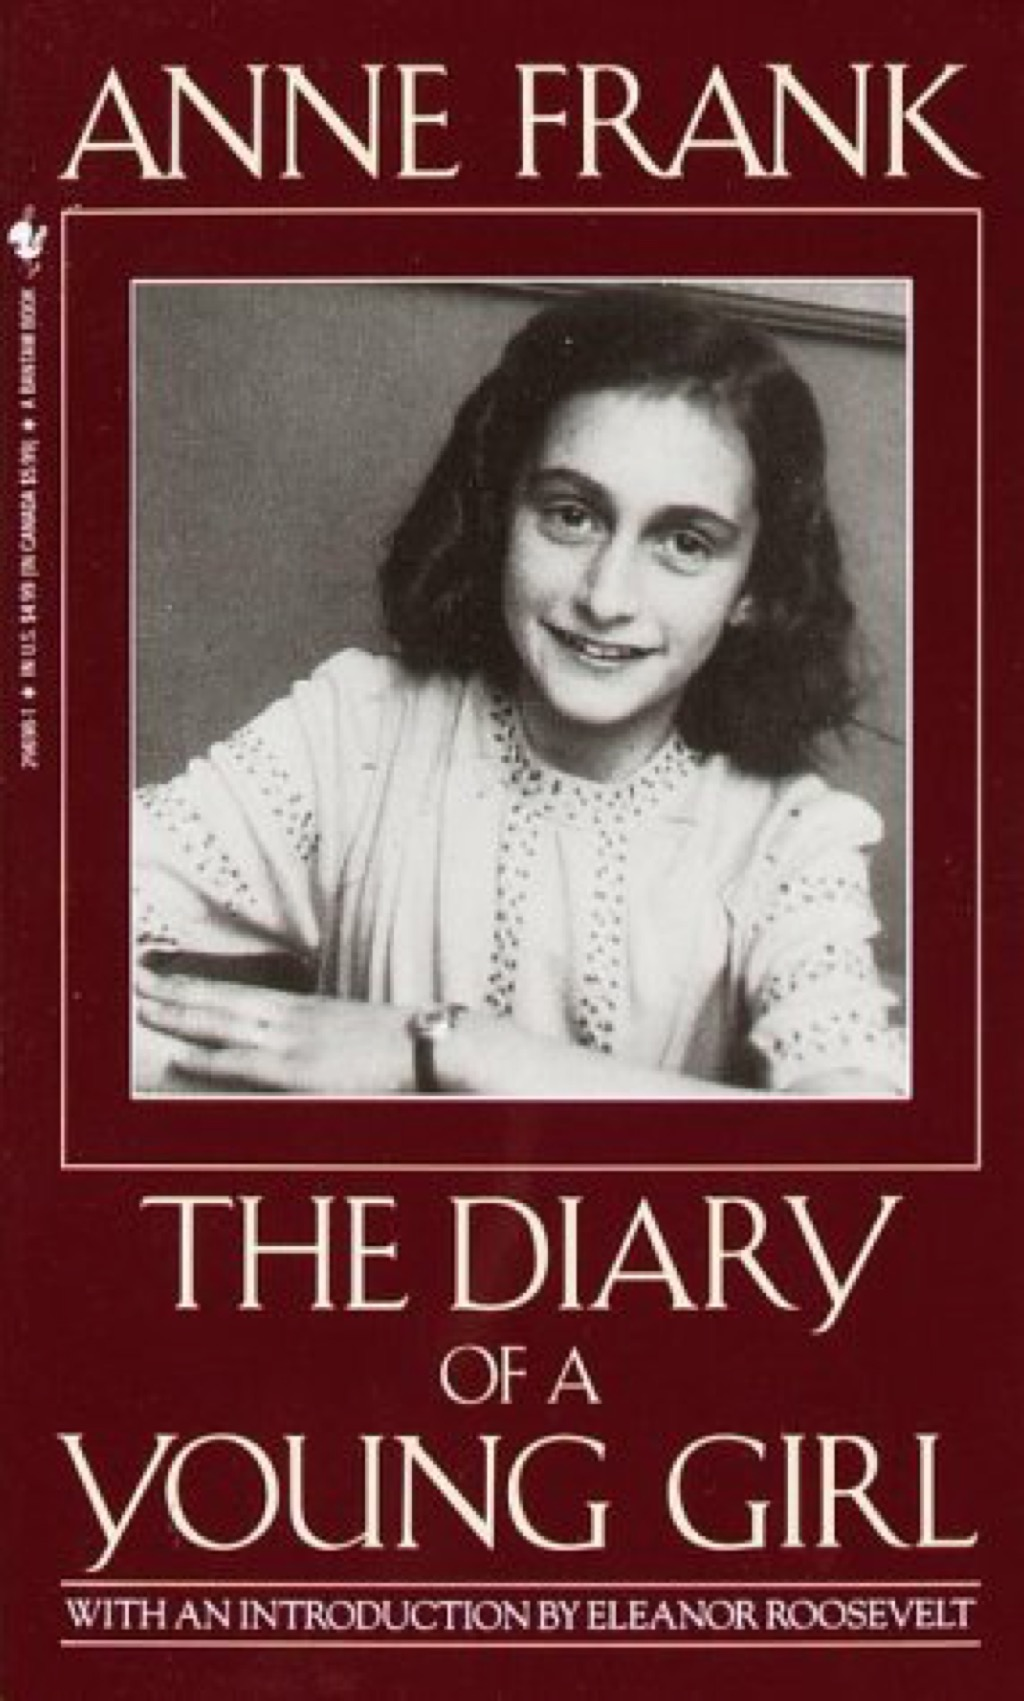 """Anne Frank """"The Diary of a Young Girl"""" book cover"""